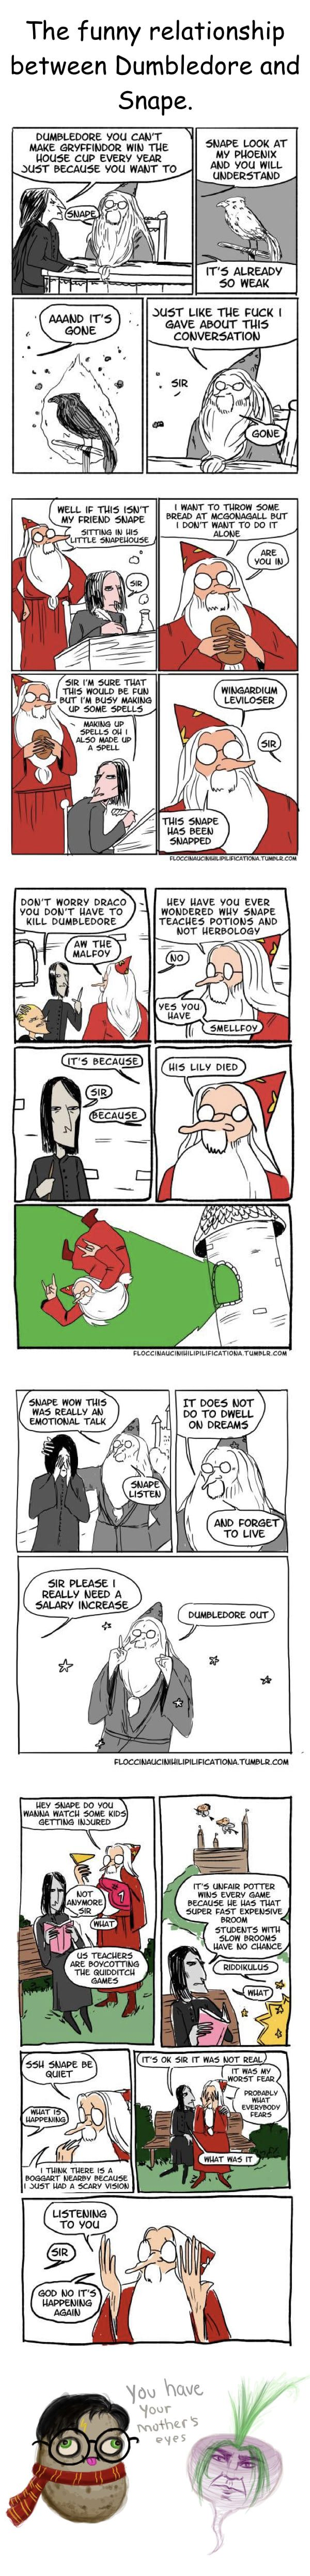 Harry Potter comic shows us the funny relationship between Dumbledore and Snape.